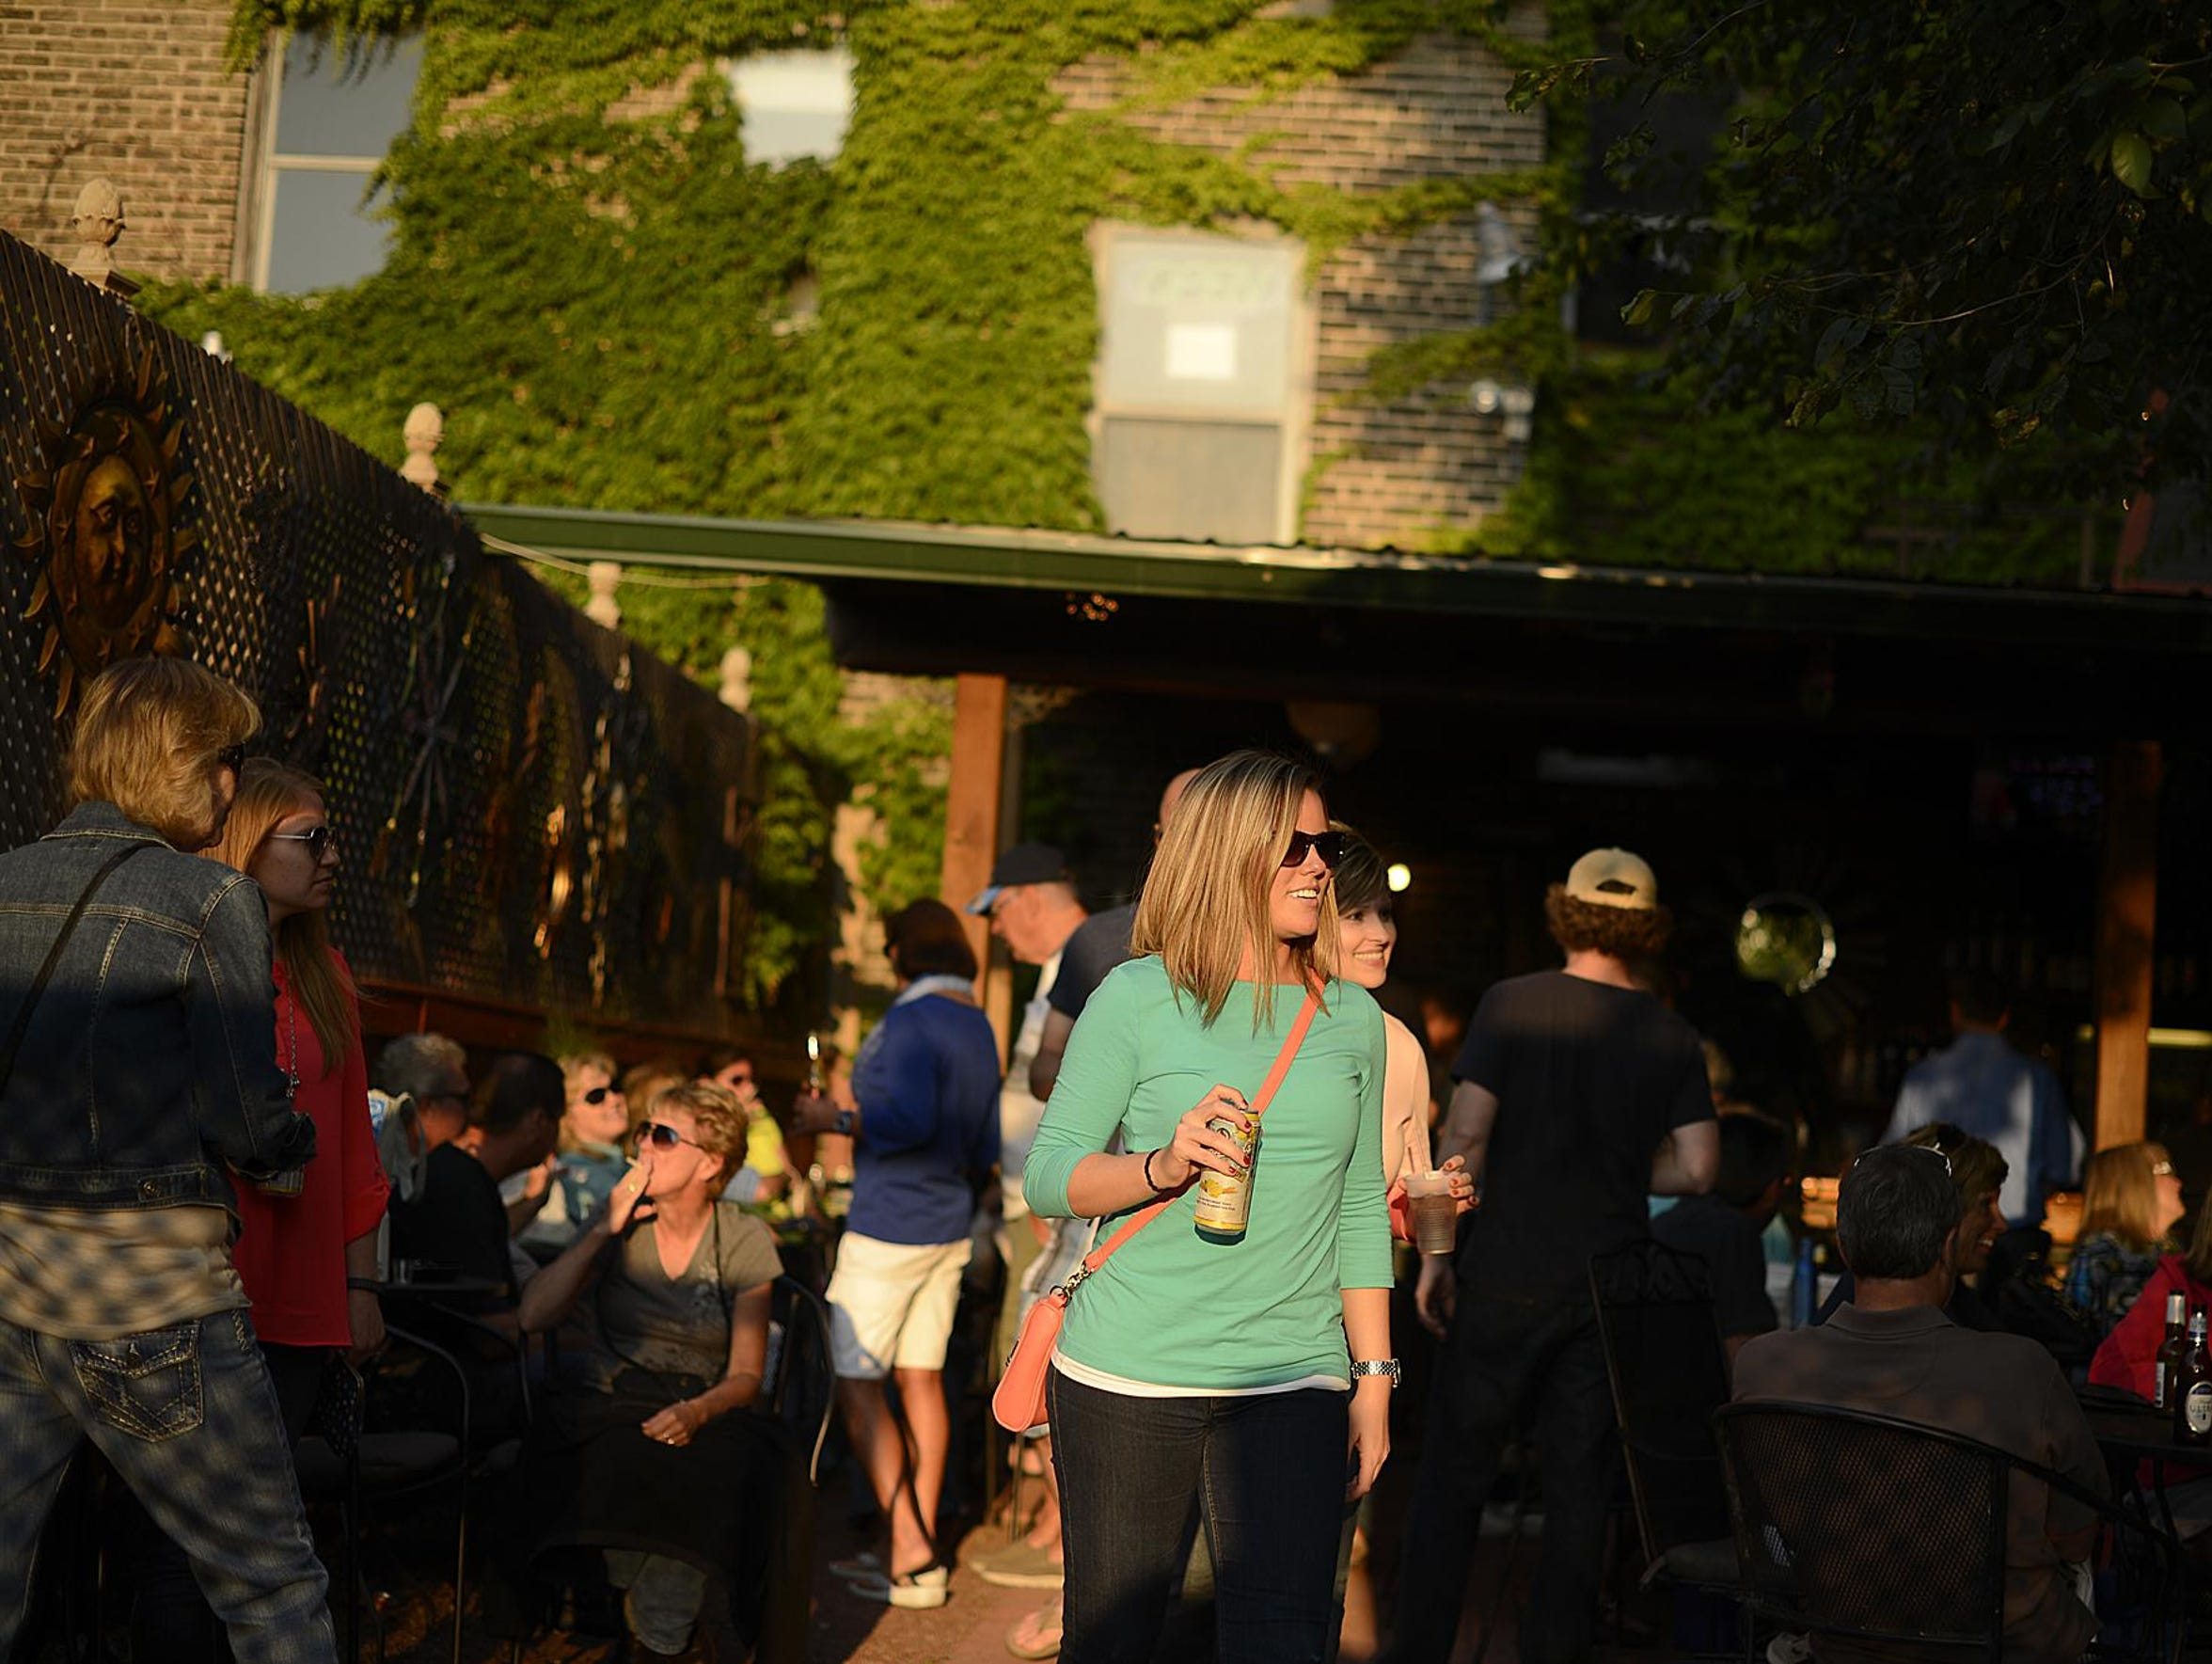 People gather at the Keggers beer garden in Green Bay